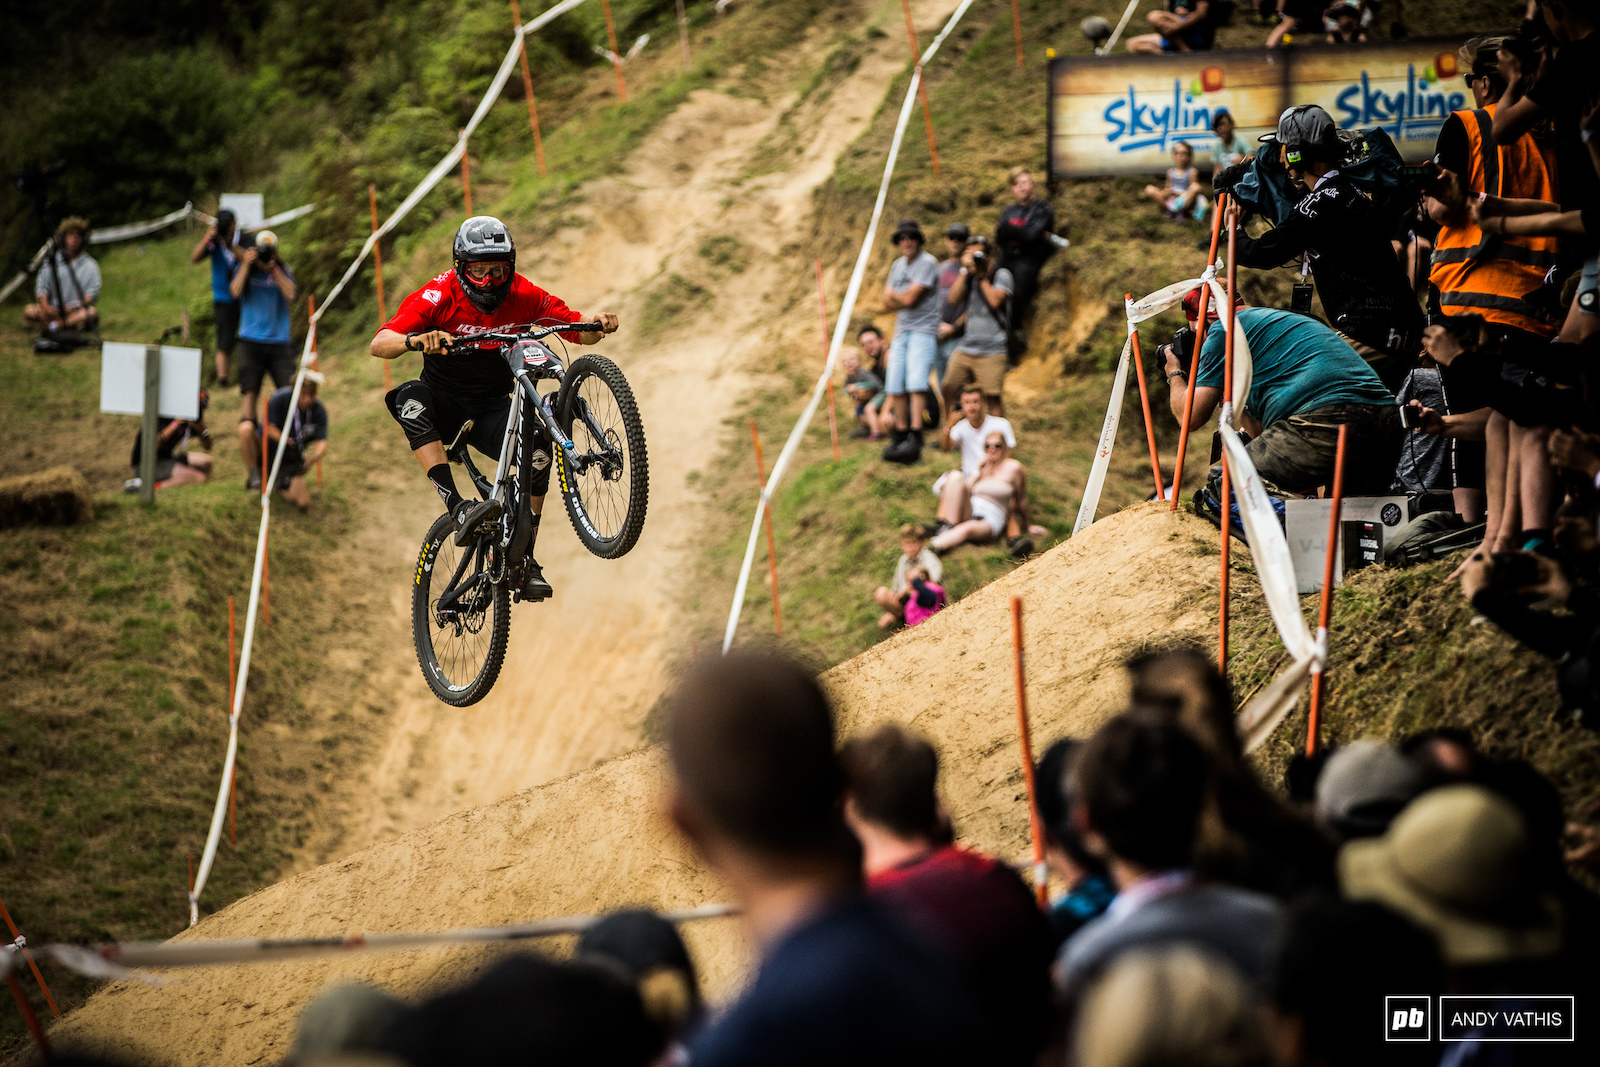 The reigning King of Crankworx and local boy Sam Blenkinsop would need more than a couple mid-air pedal strokes to claw back at the clock.